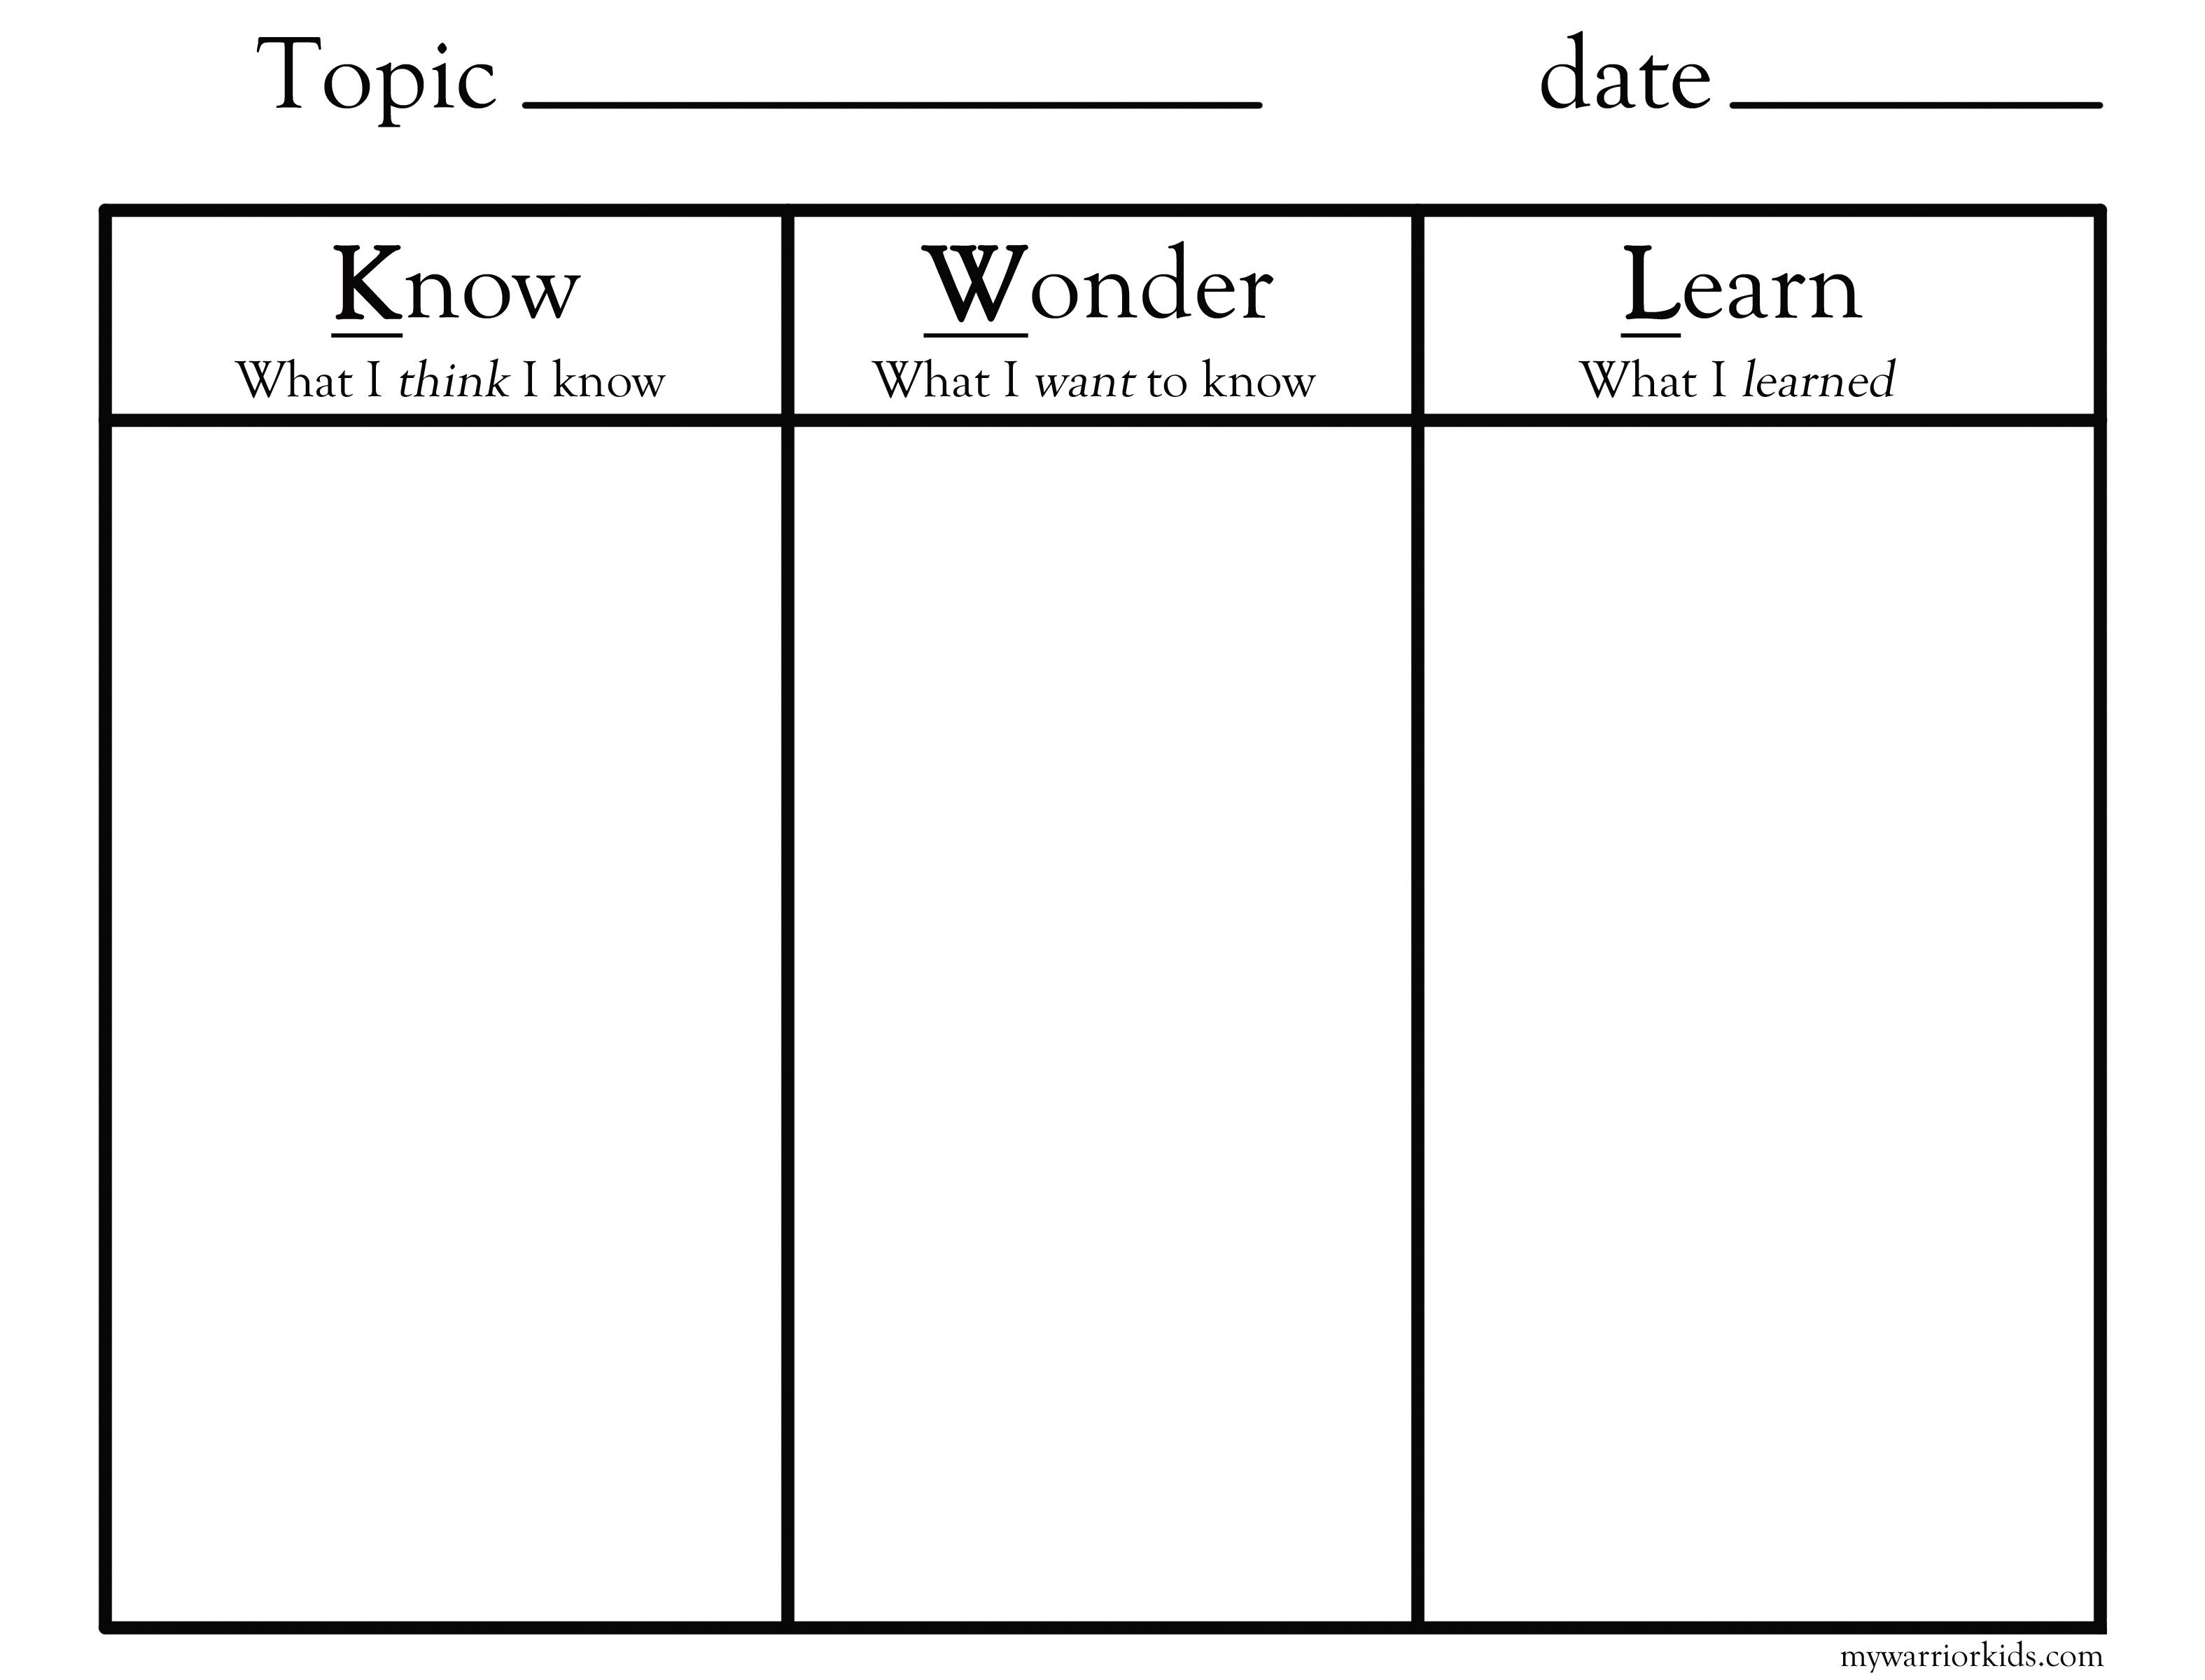 kwl worksheet Termolak – Kwl Worksheet